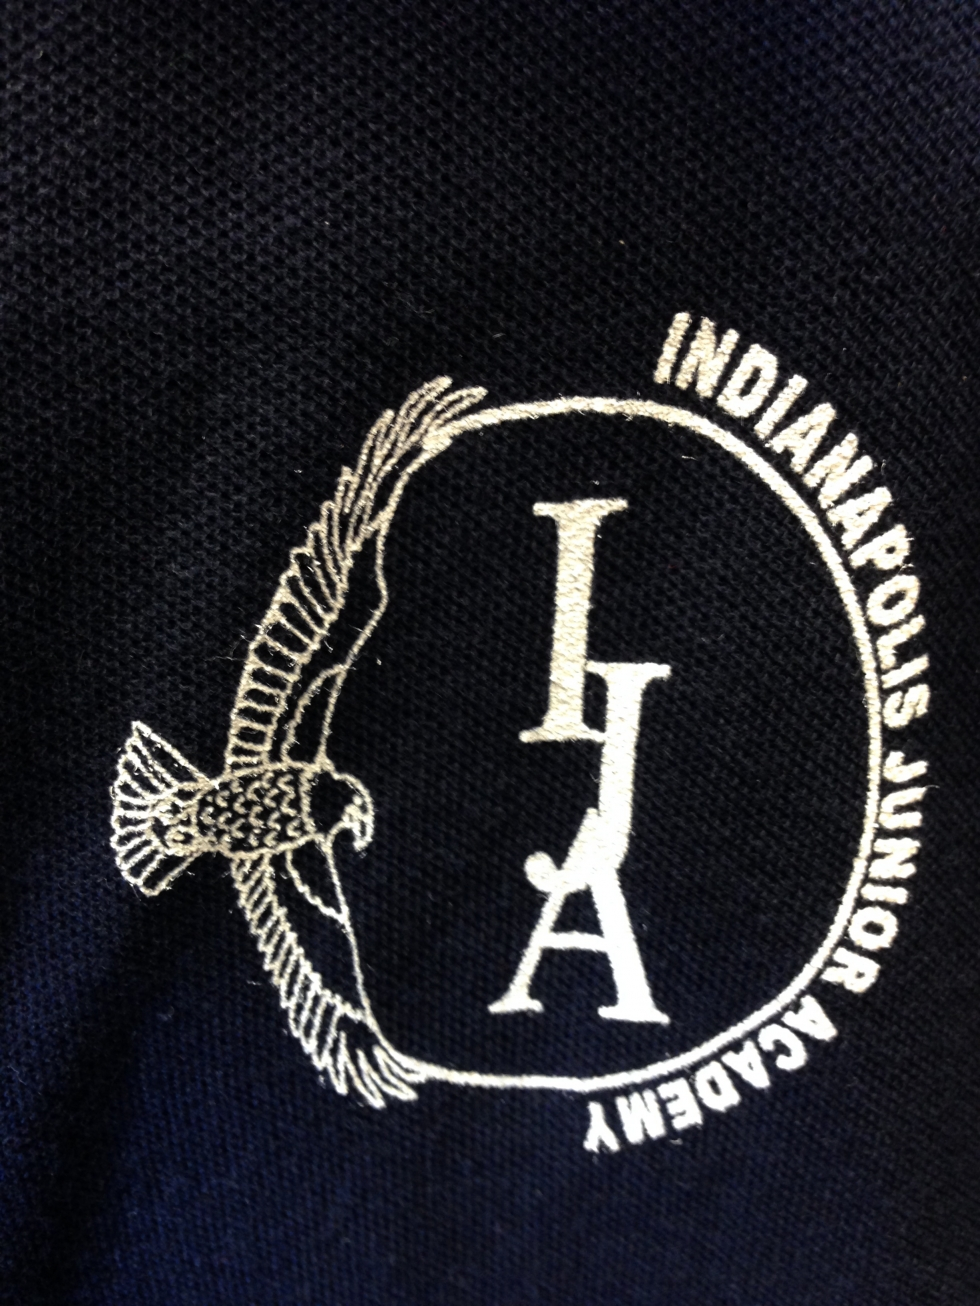 IJA Polo Shirt